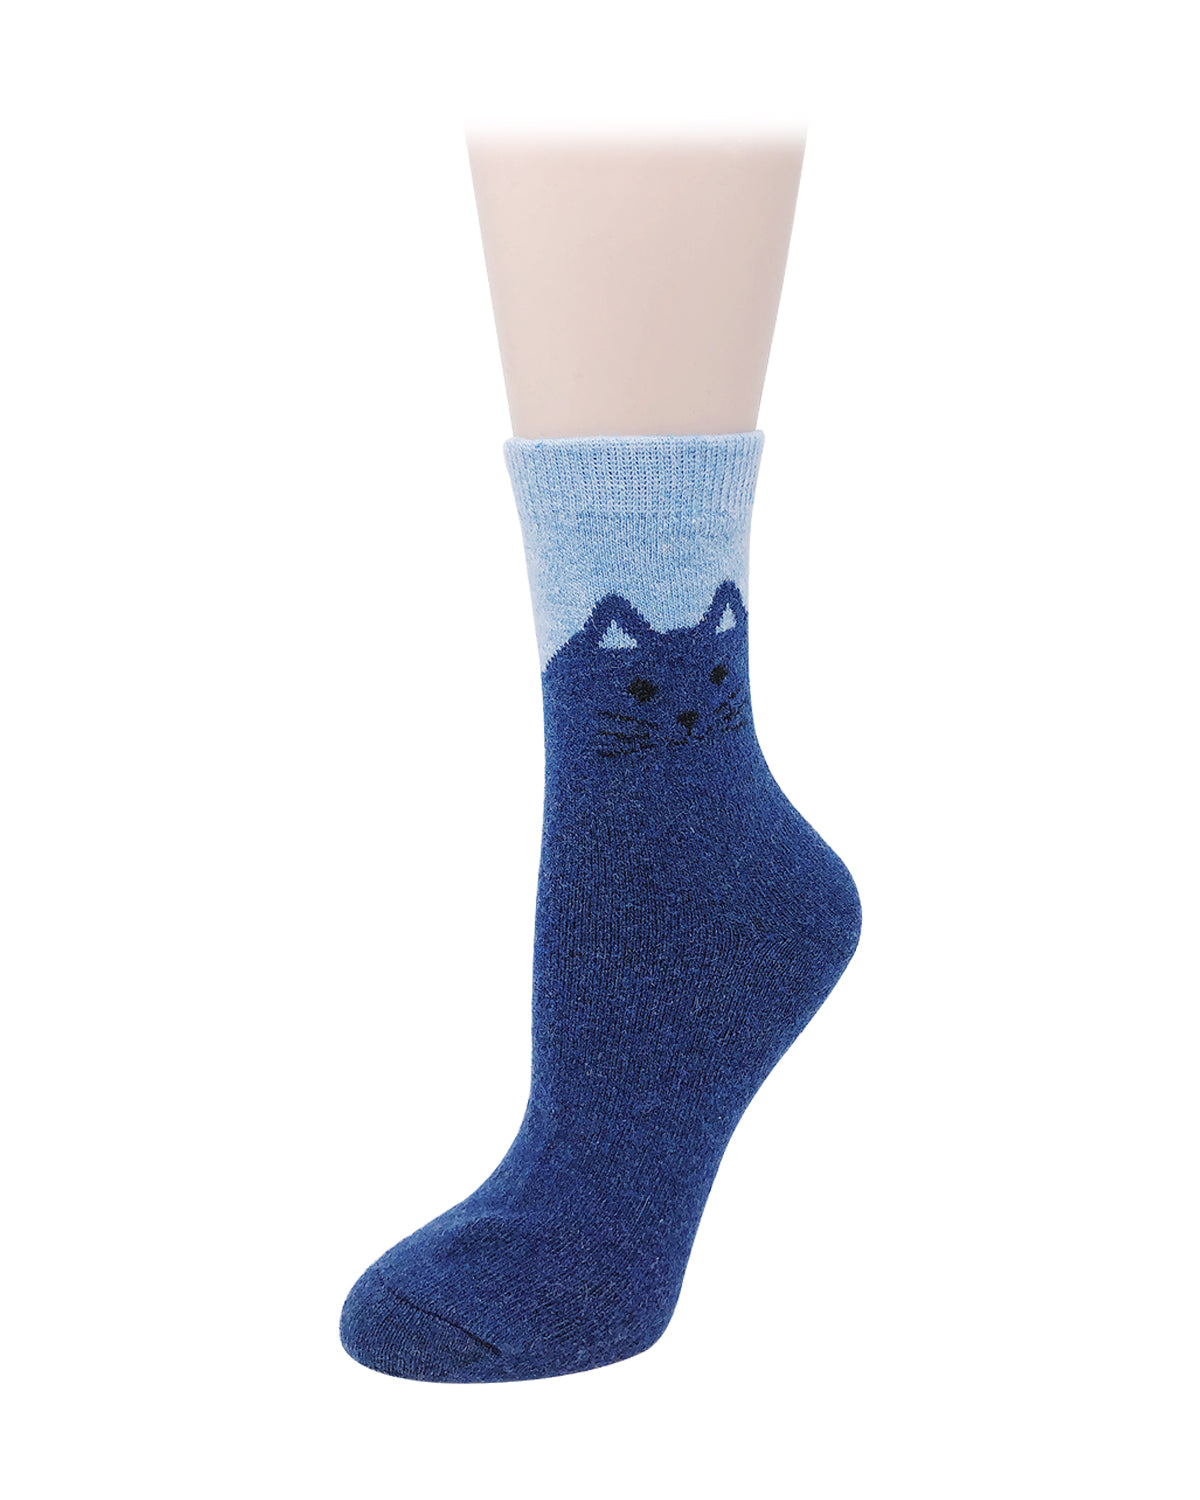 Wrapables Women's Thick Winter Warm Cat Print Wool Socks (Set of 5)